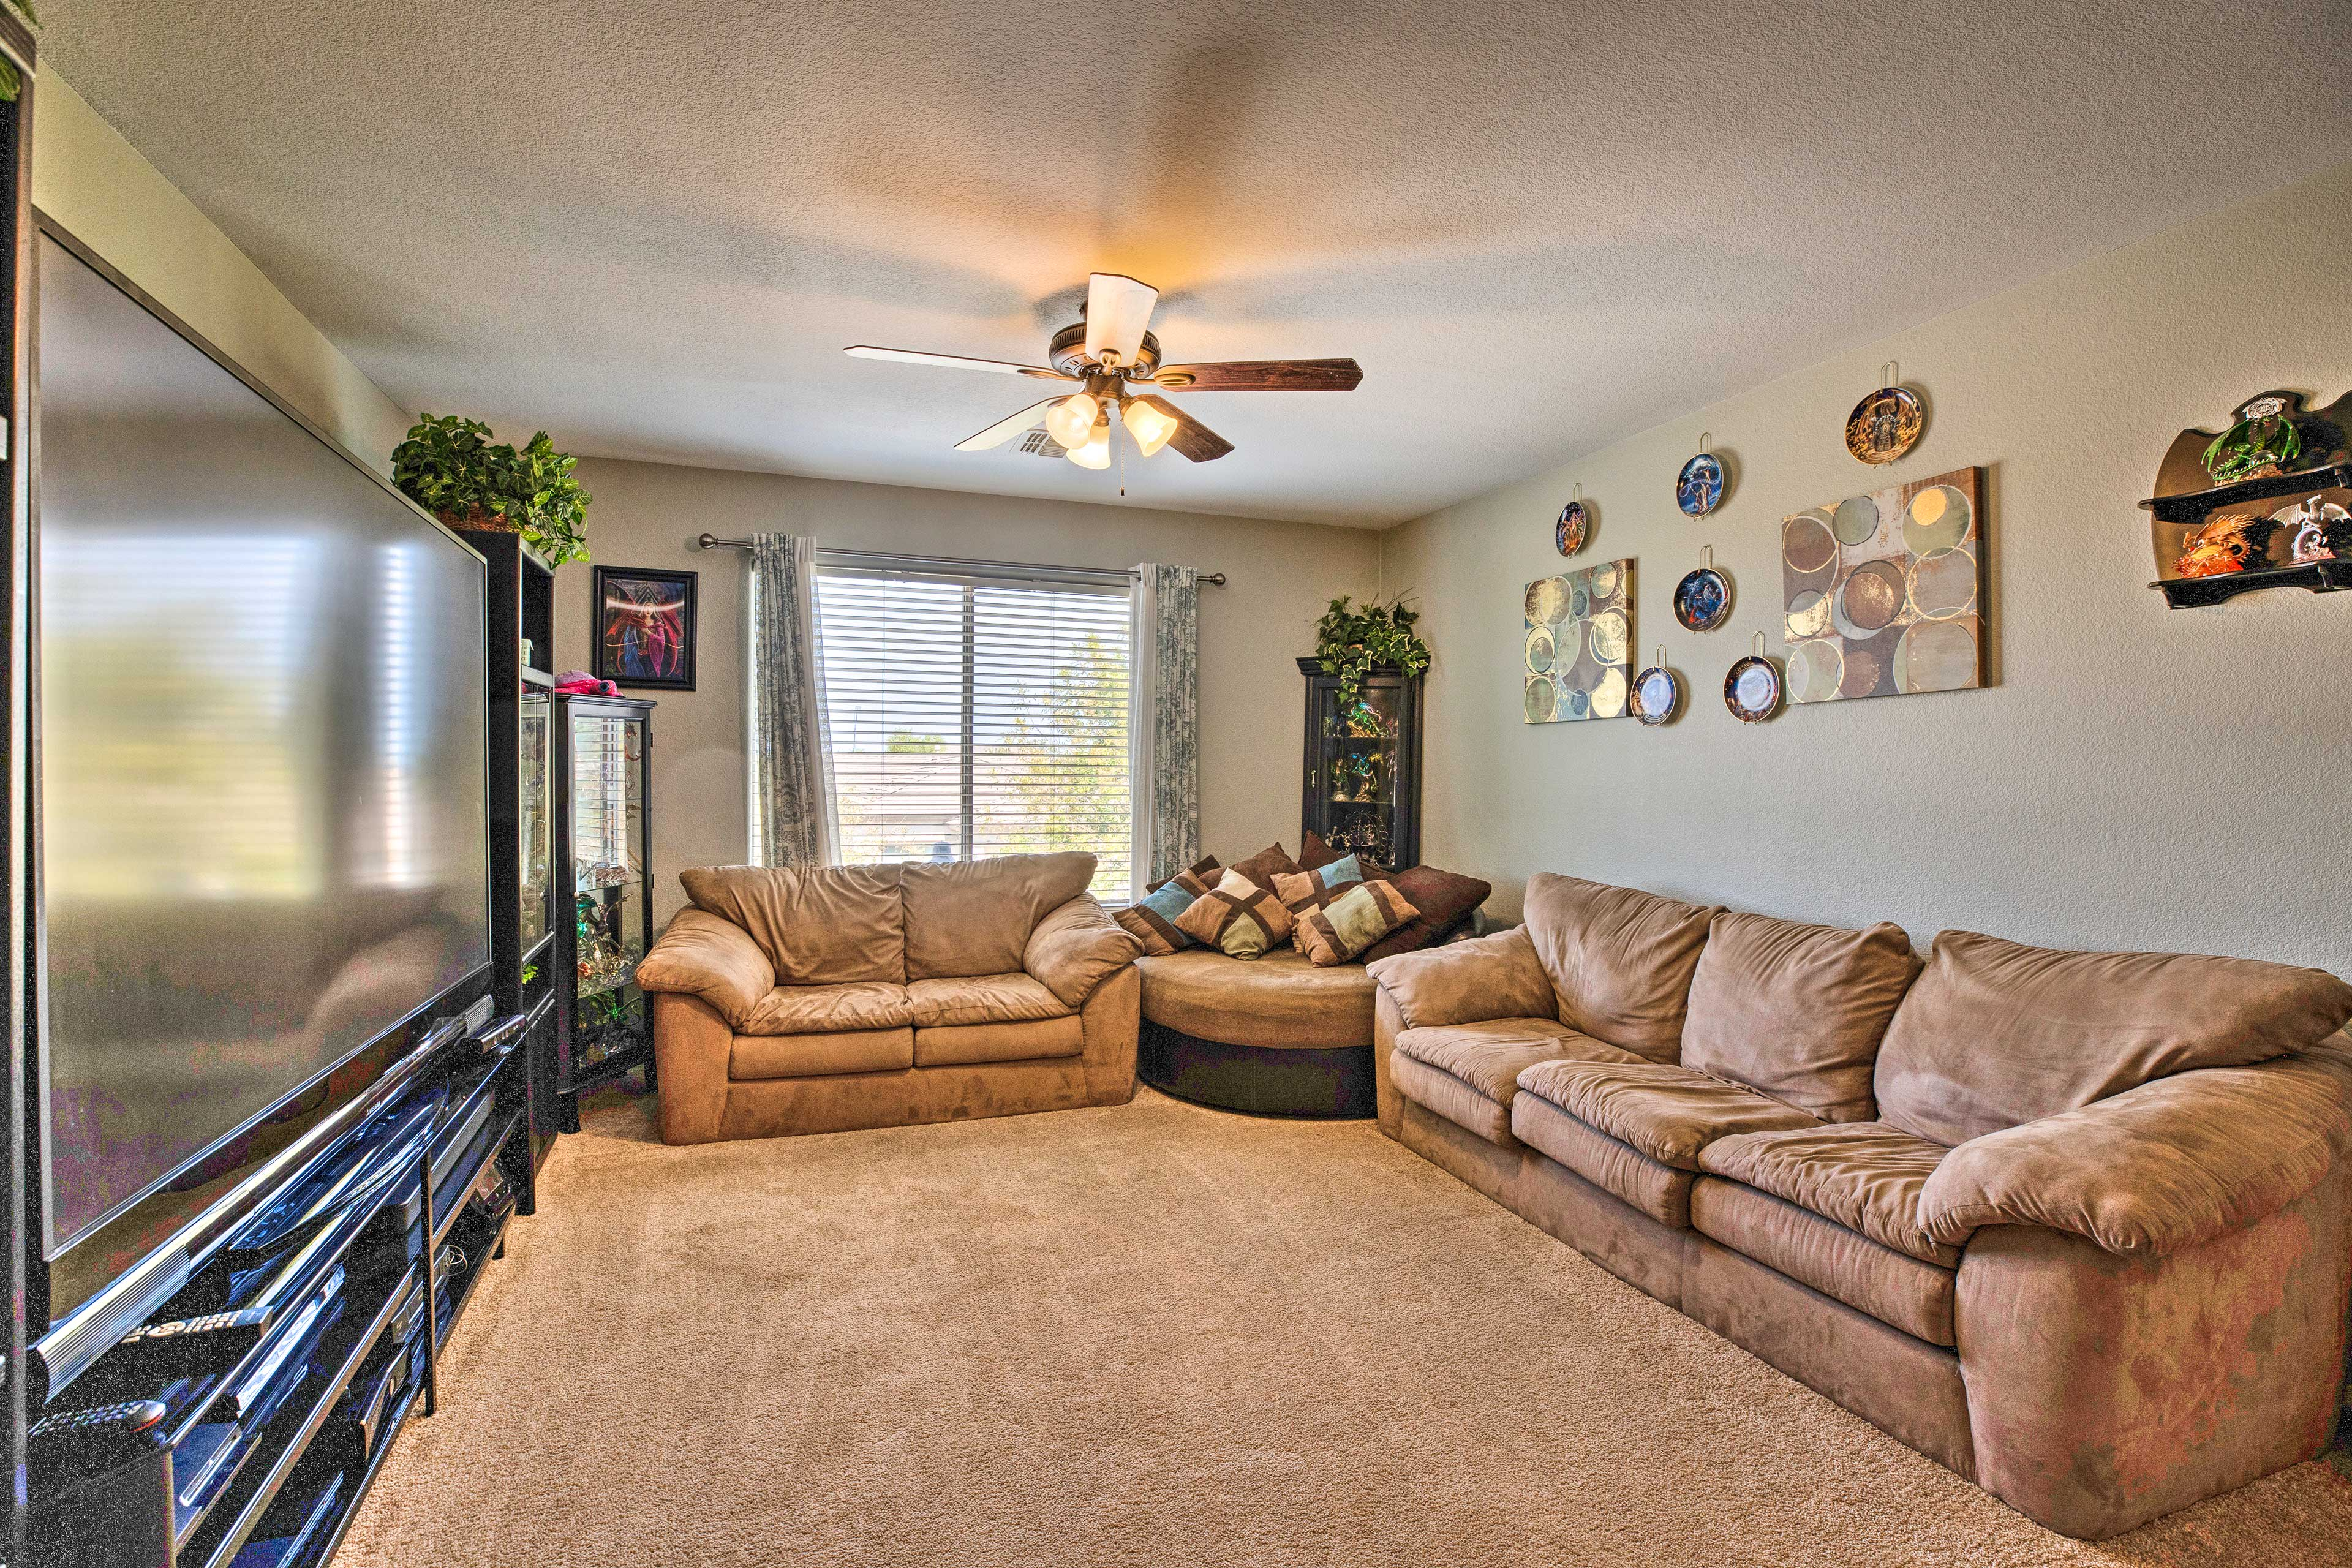 Plush couches and soft carpeting complement this room nicely!